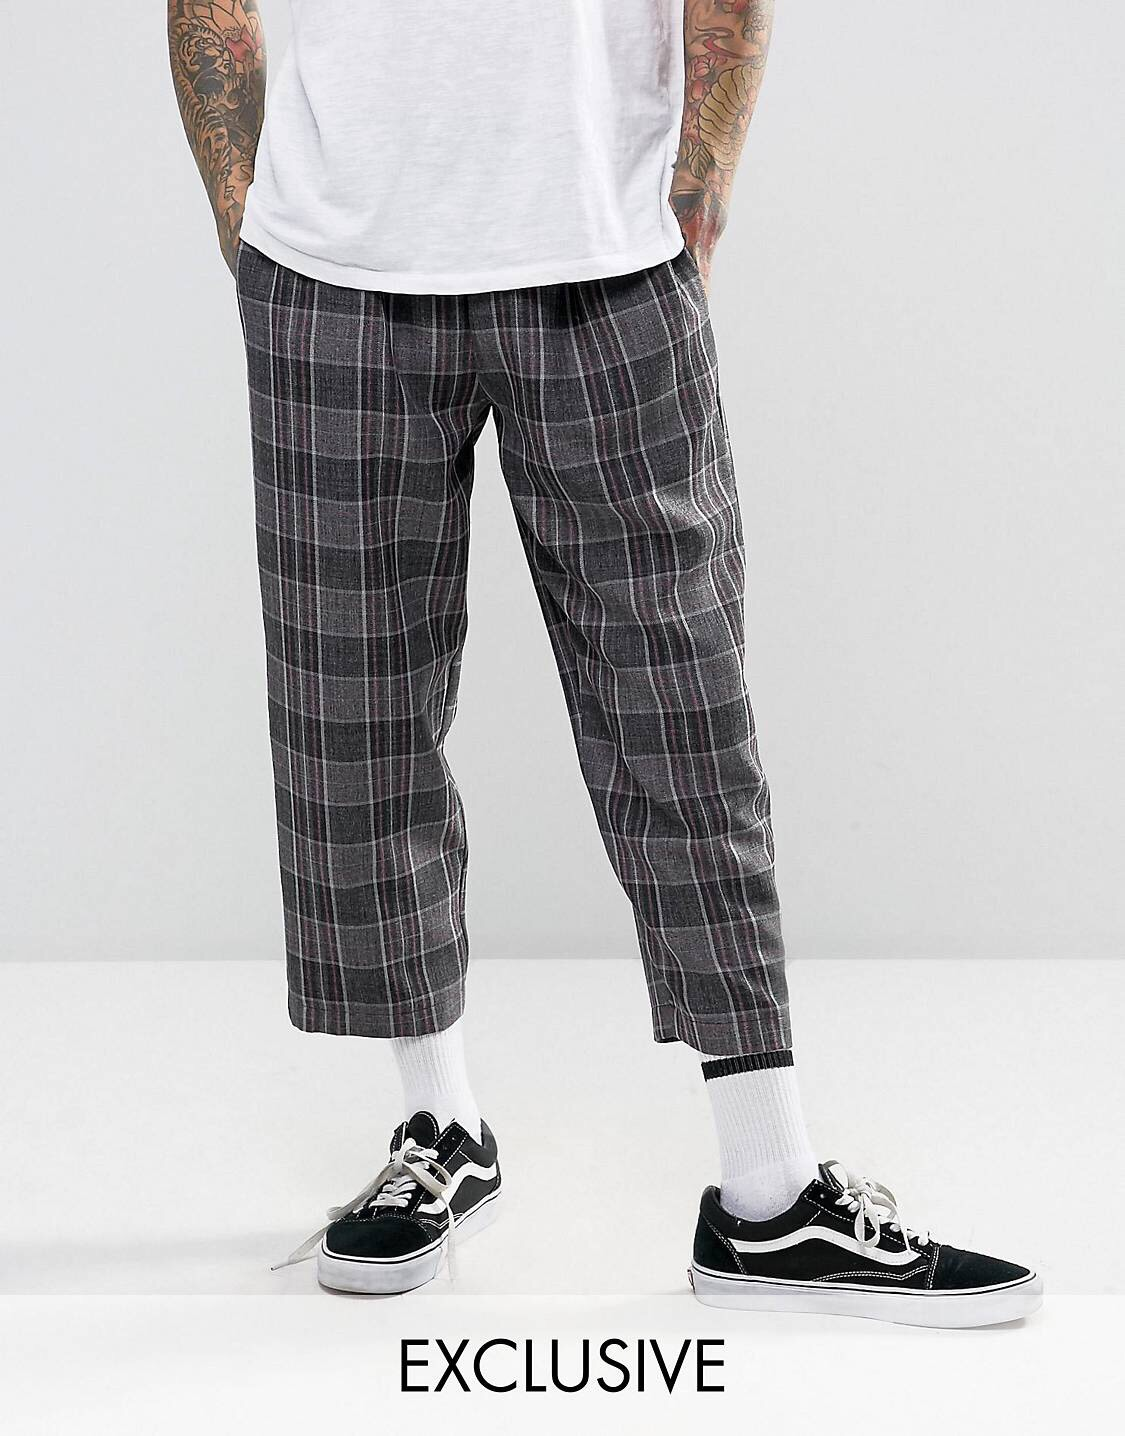 £40 Reclaimed Vintage Trousers - Here's the link for the bottoms if you're willing for ASOS to finesse you